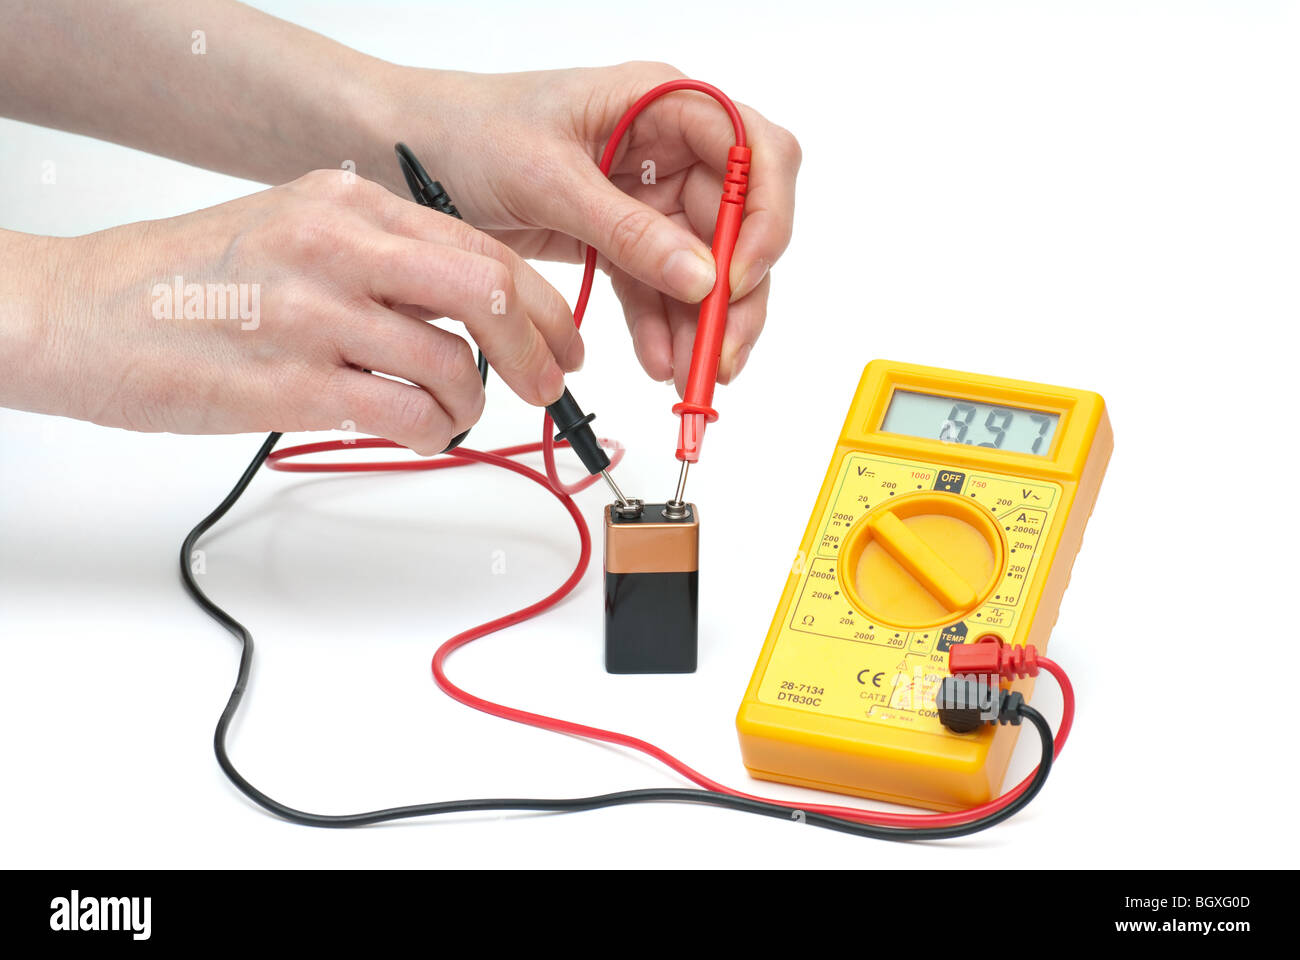 measuring battery voltage - Stock Image